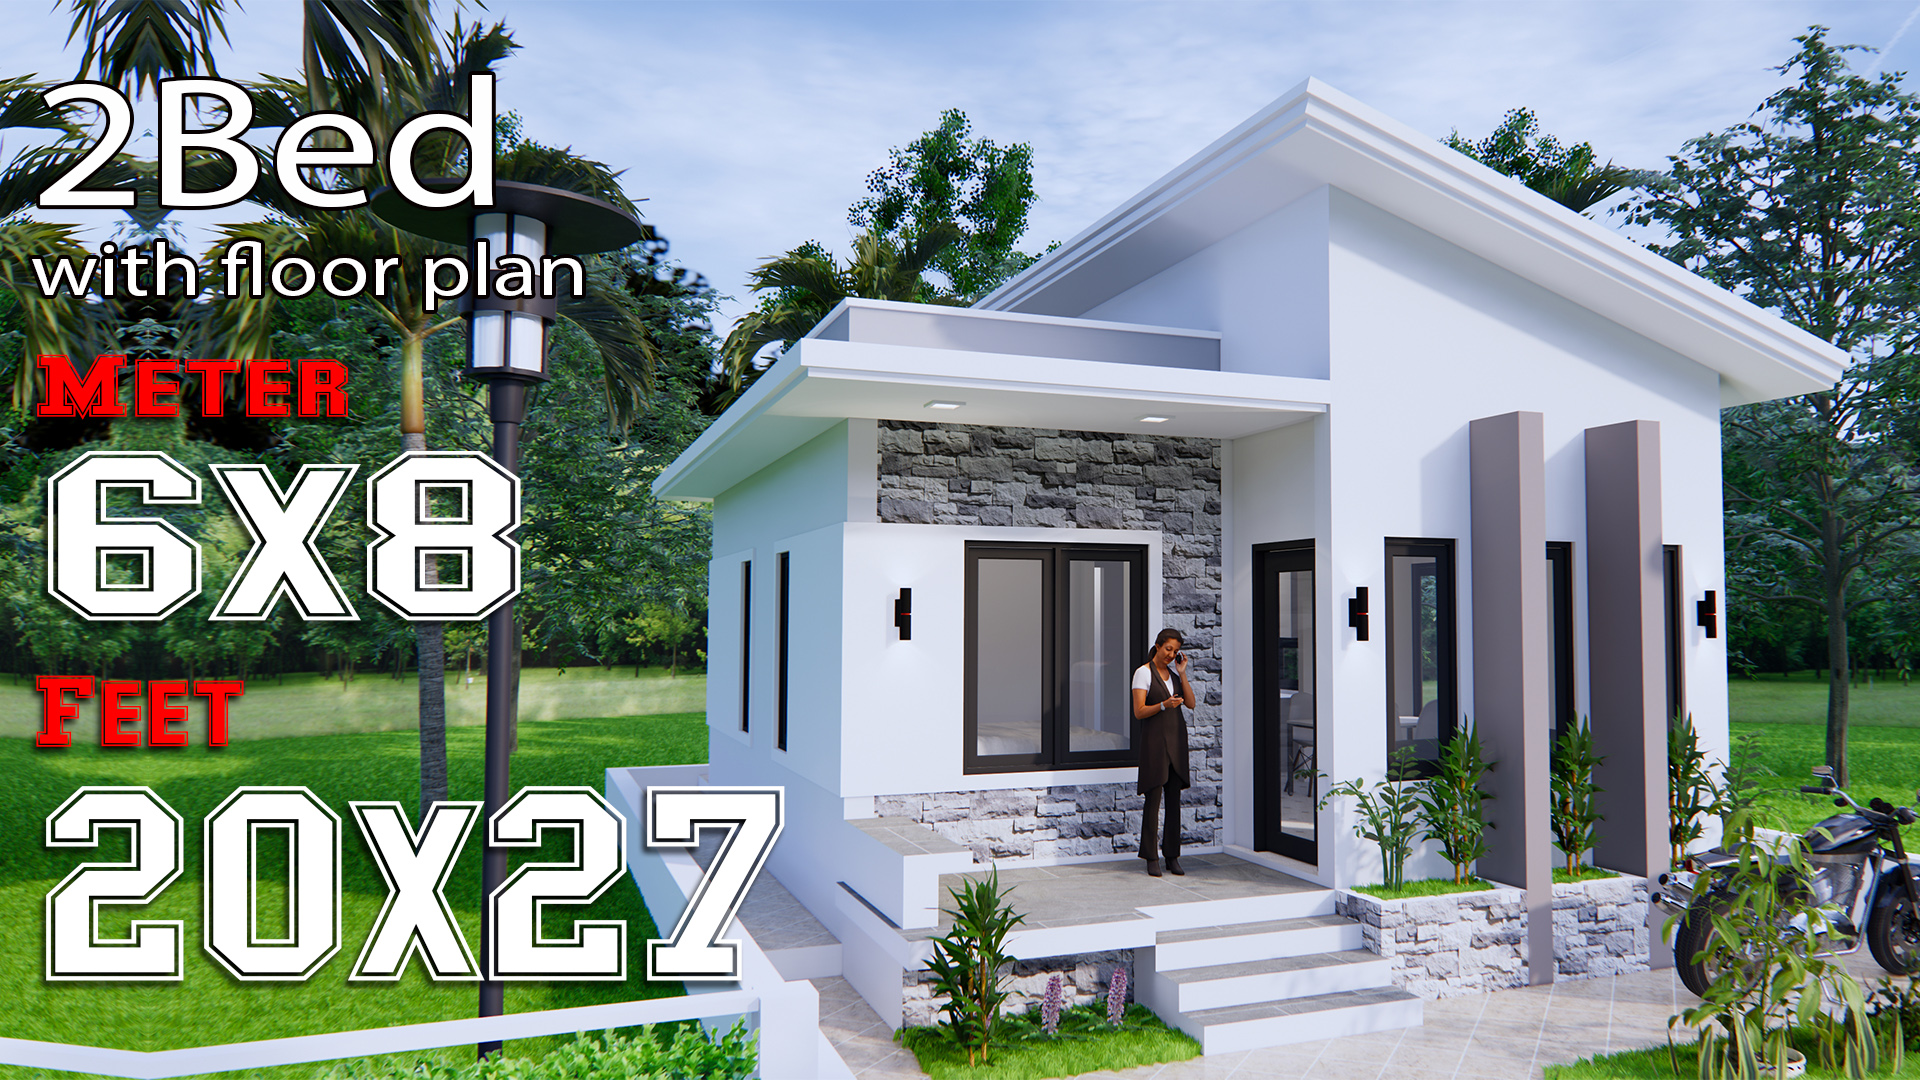 Small House Design 6x8 Meter 20x27 Feet Shed Roof Samhouseplans